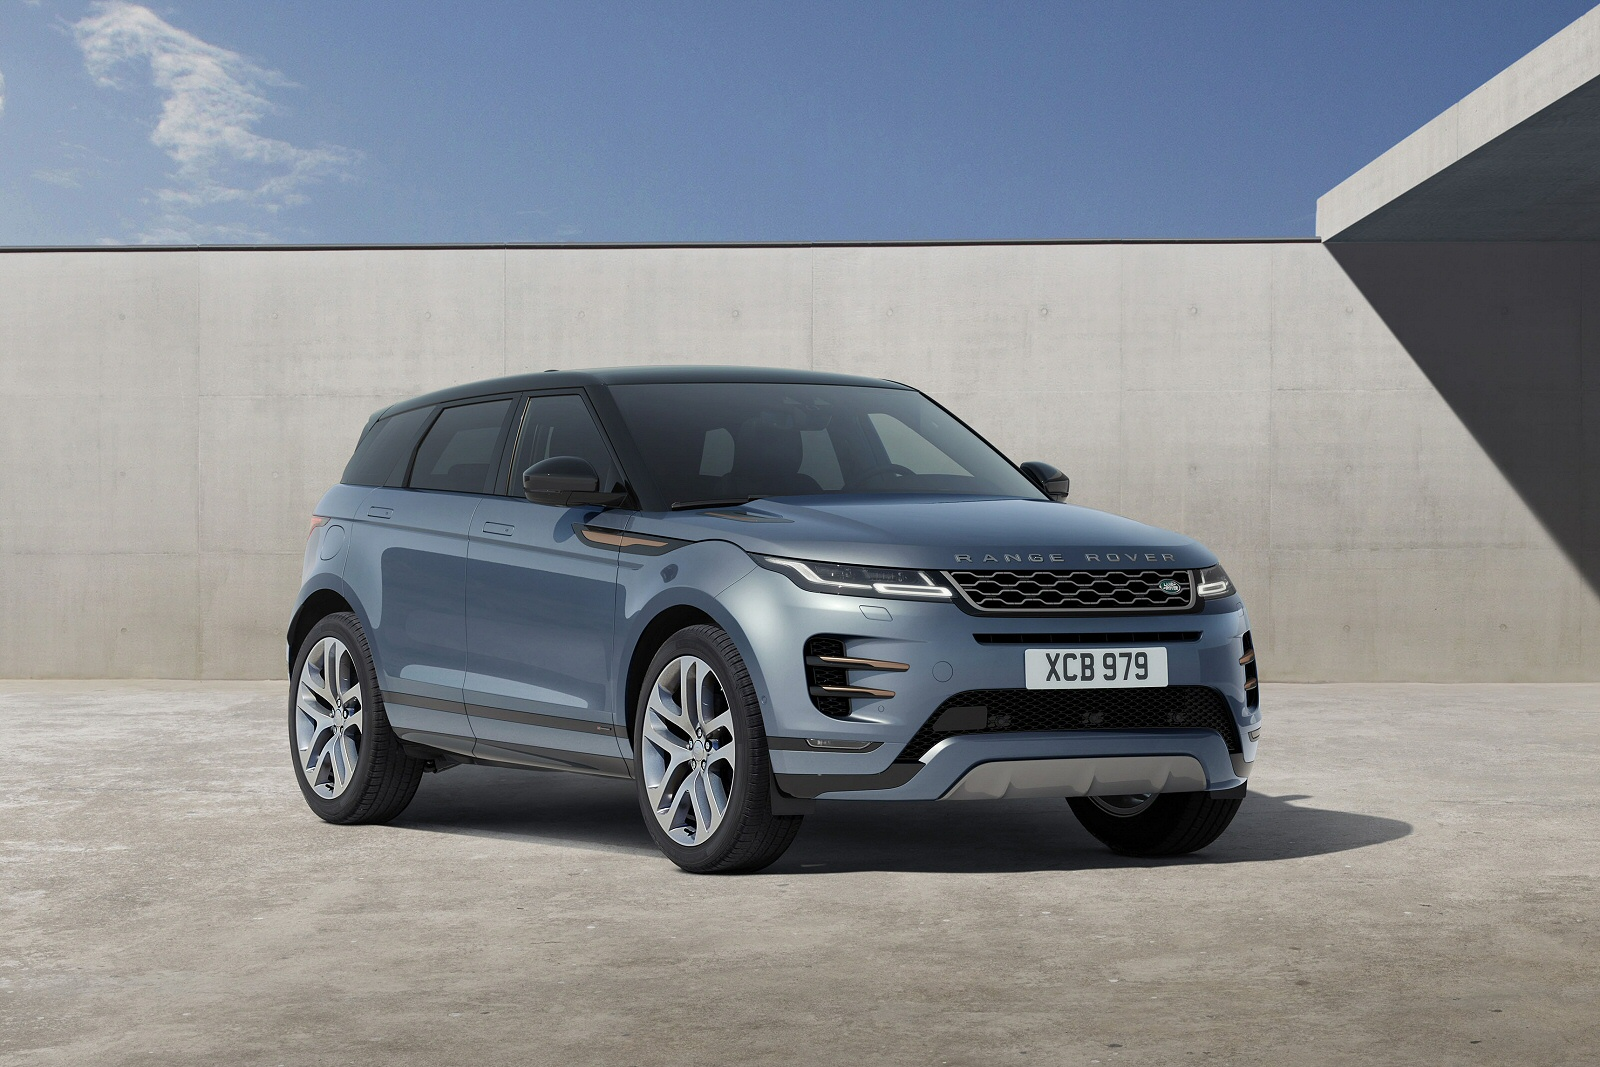 Land Rover Range Rover Evoque 2.0 D165 R-Dynamic 5dr 2WD